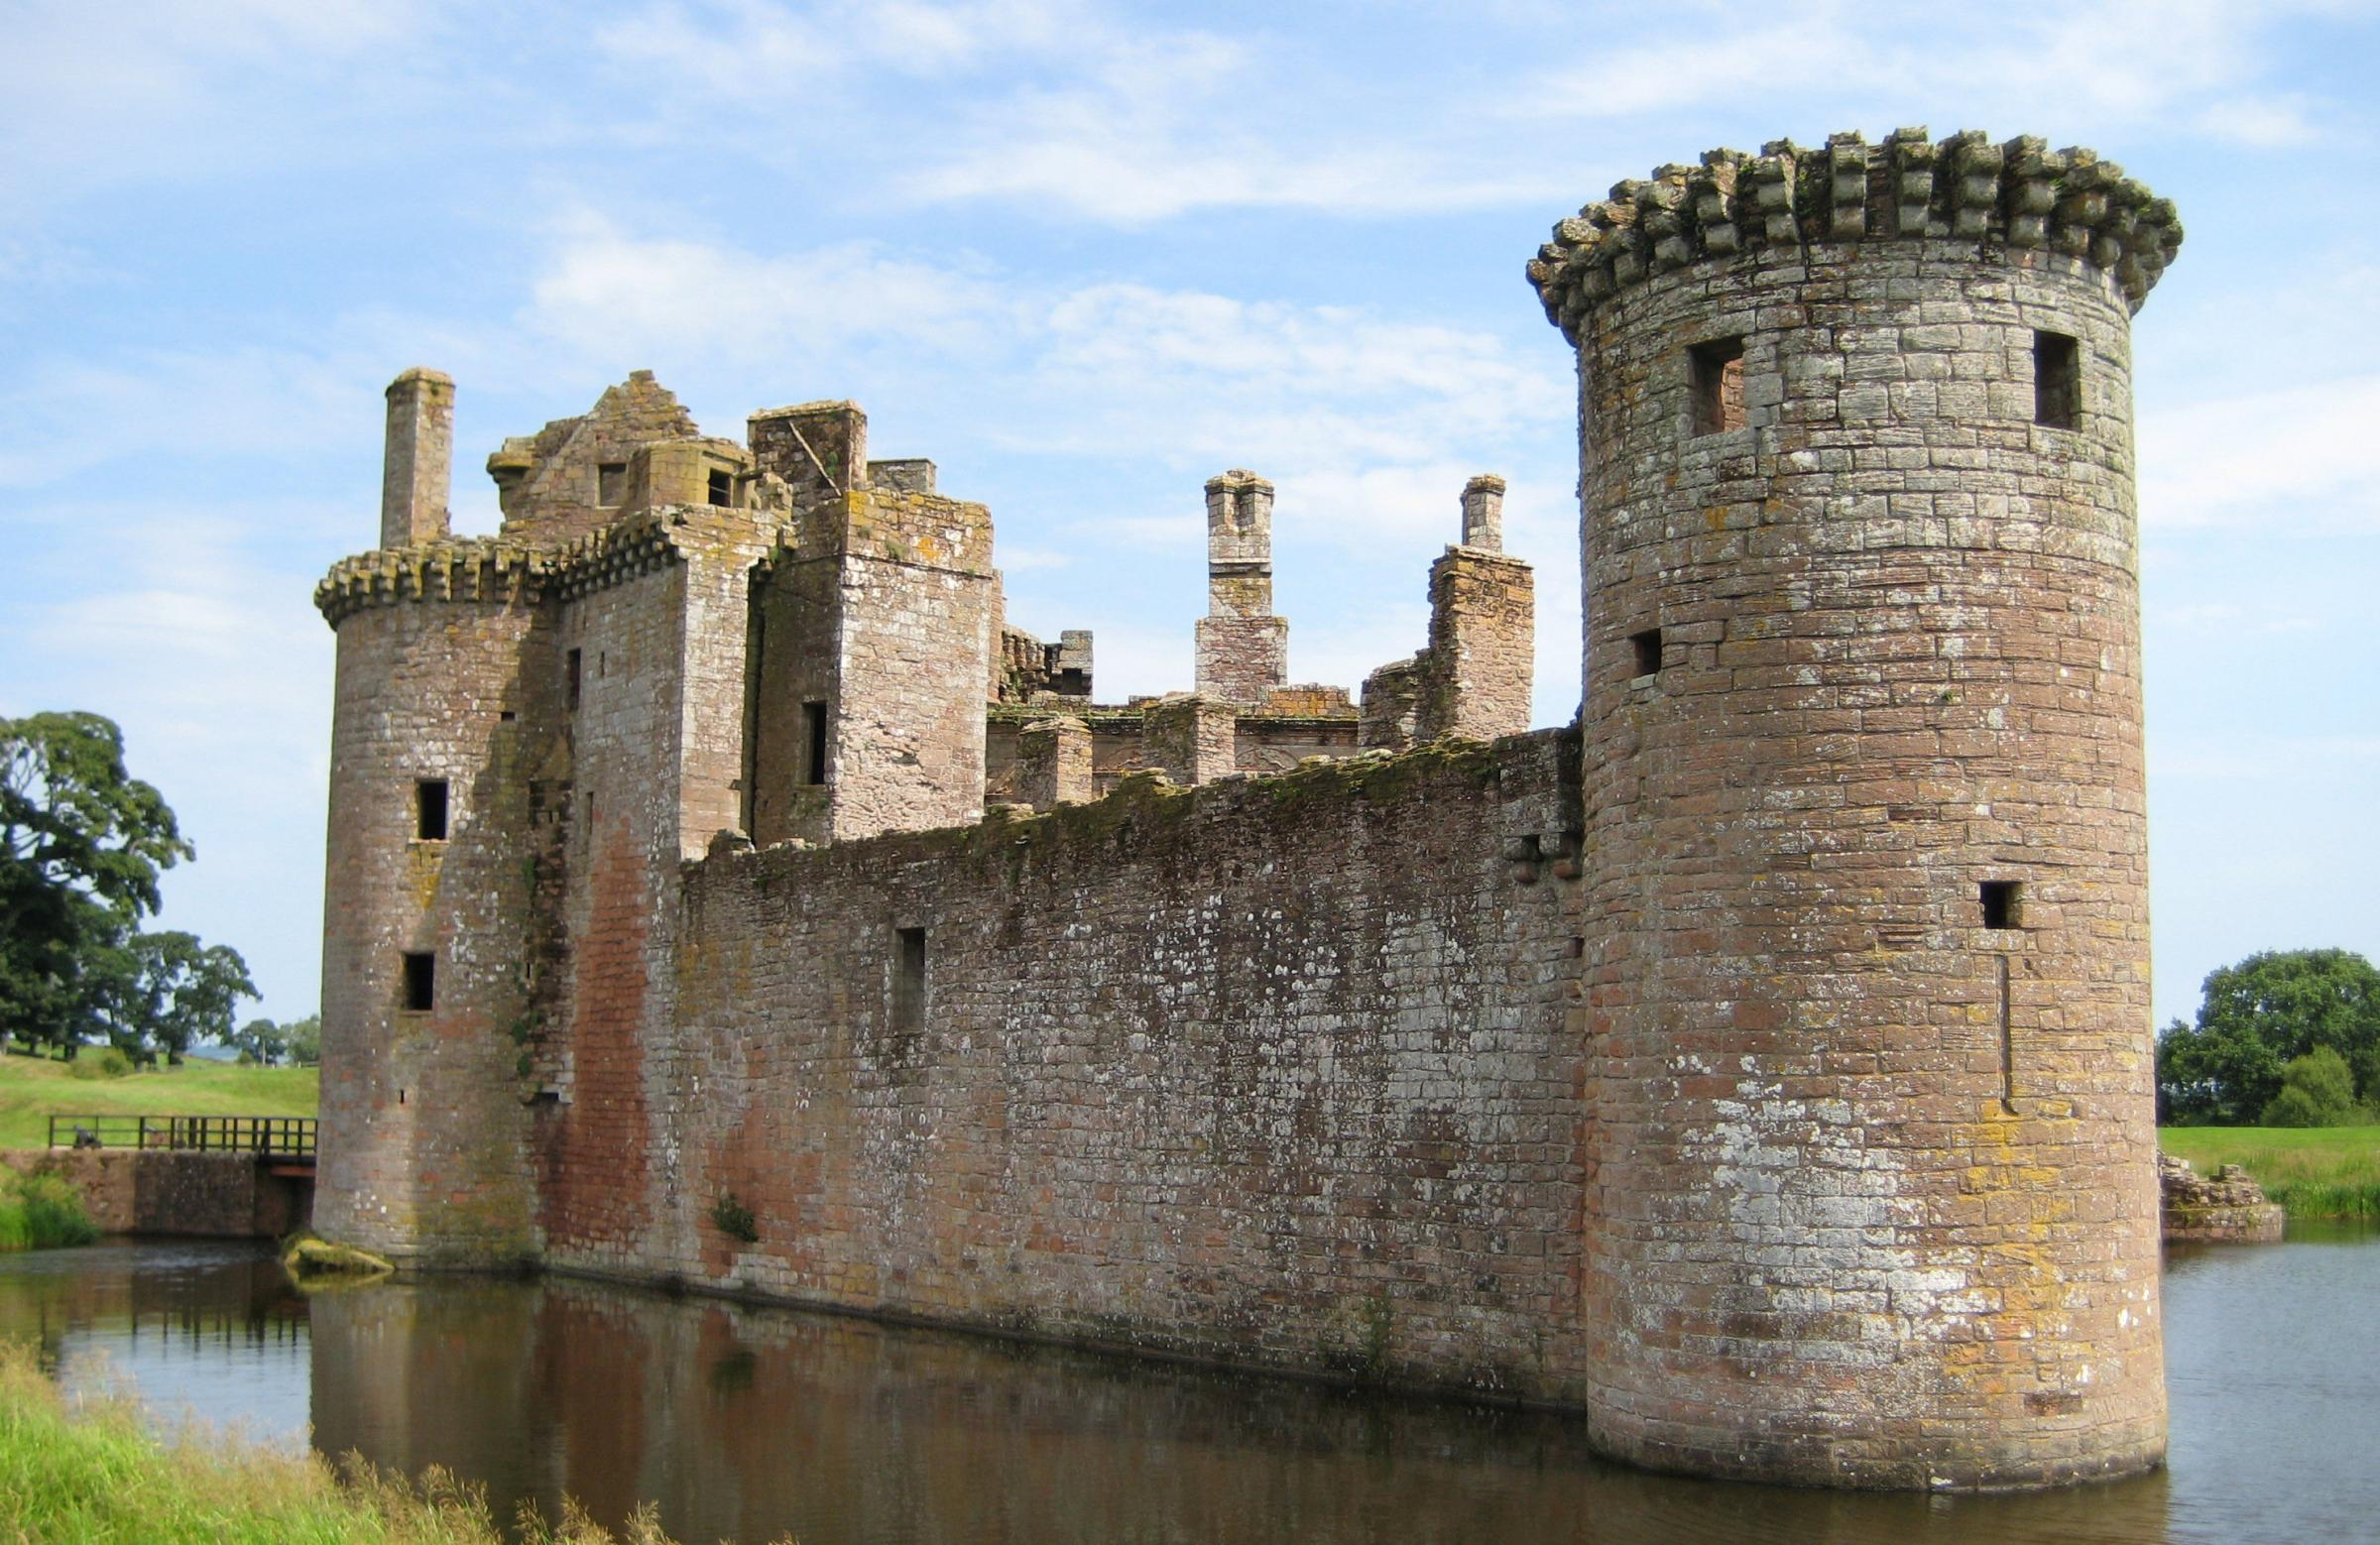 Part of the cash will go towards an augmented reality app at Caerlaverock Castle, south of Dumfries, allowing visitors to collect historical animations